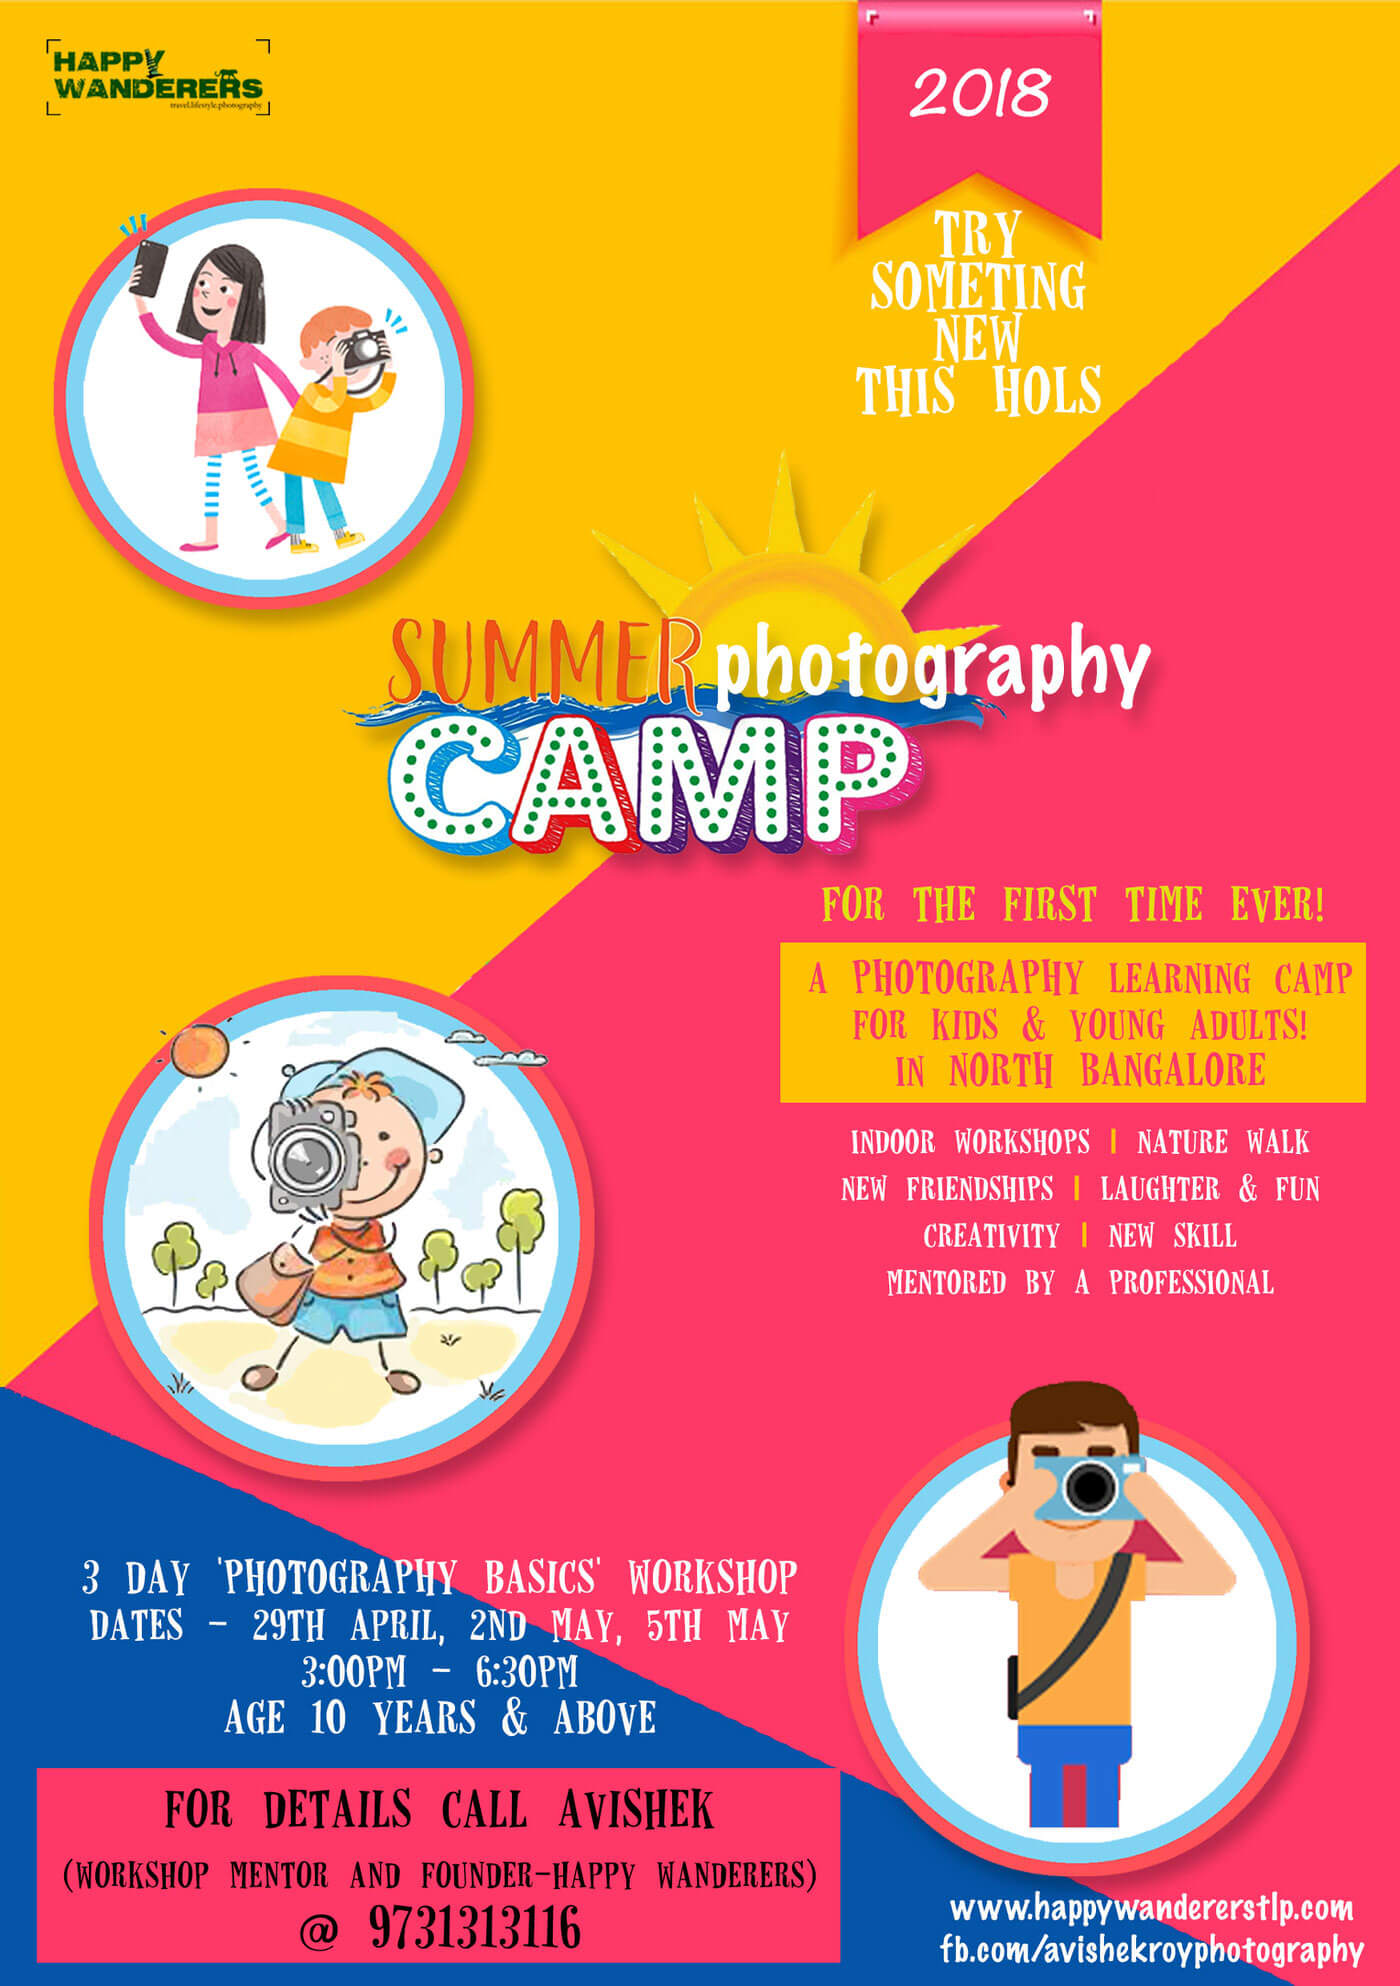 Summer Photography Camp for Kids Cover Image